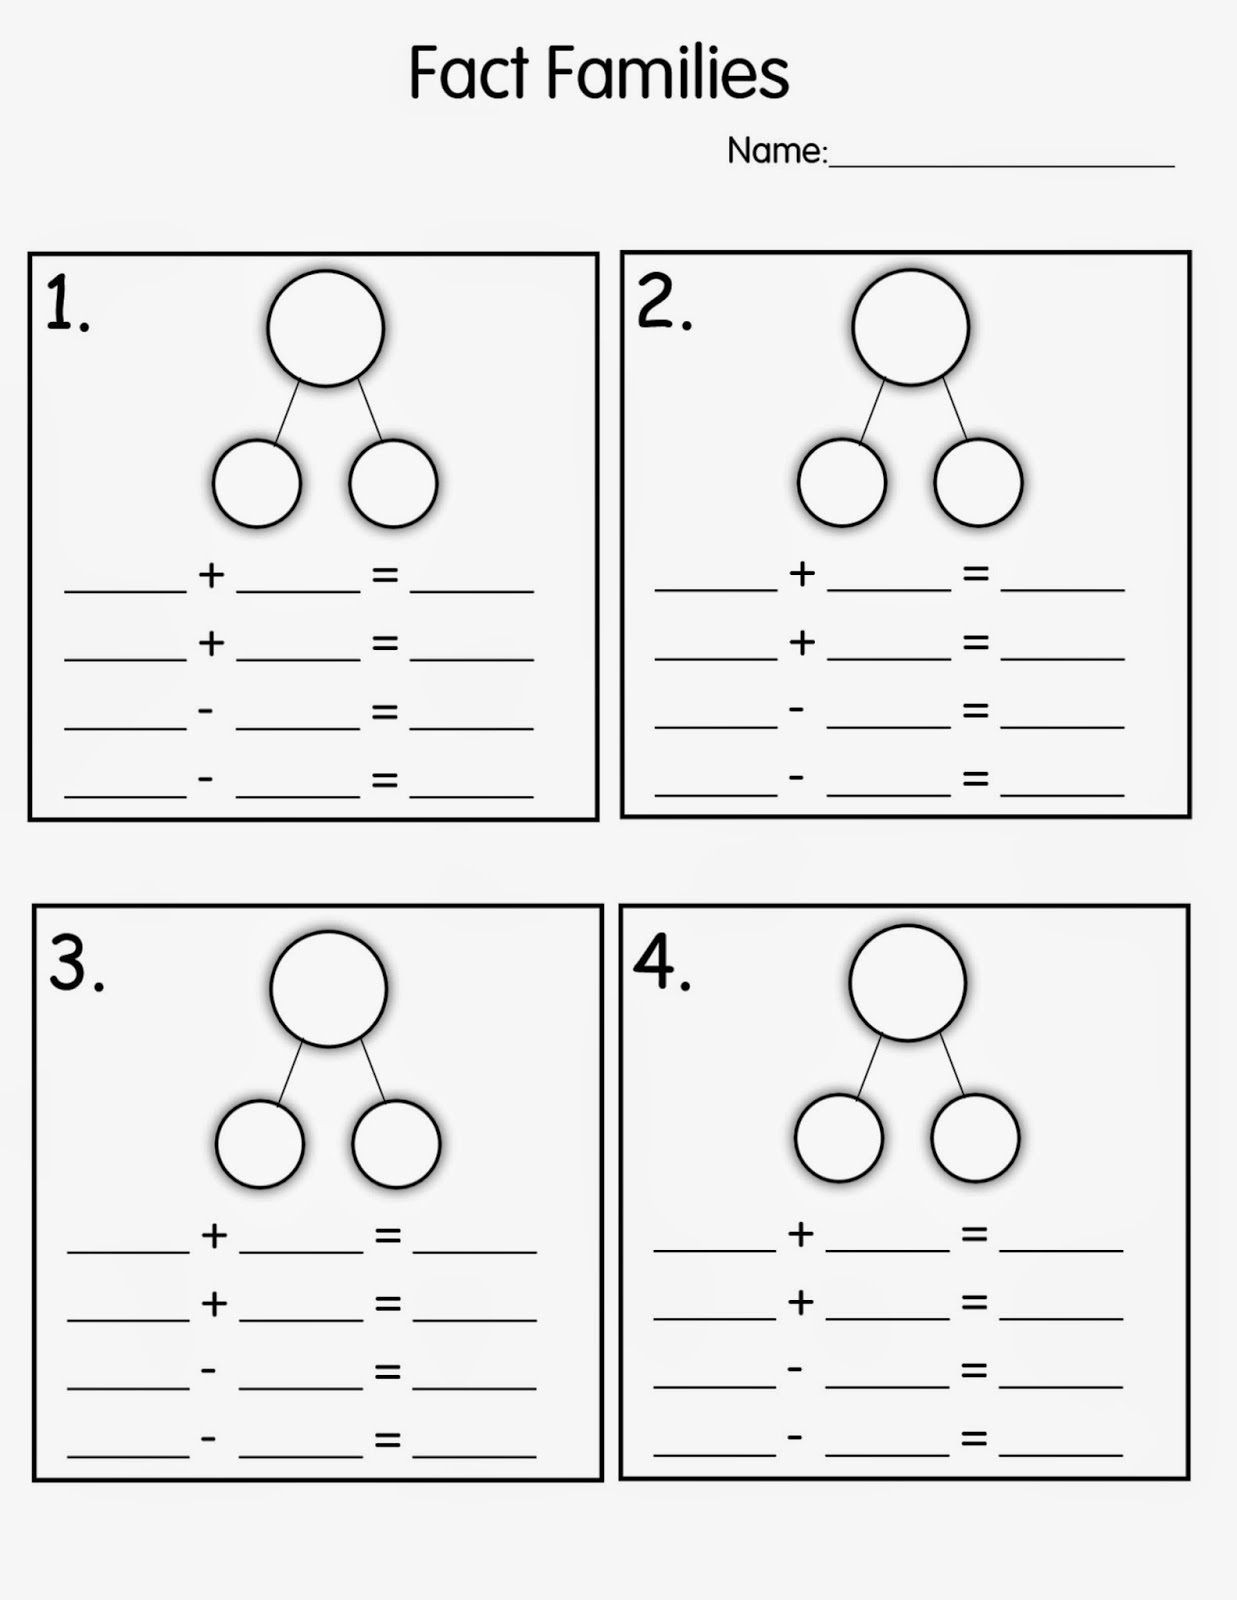 Fact Family Worksheets First Grade Number Family Worksheets for Kids